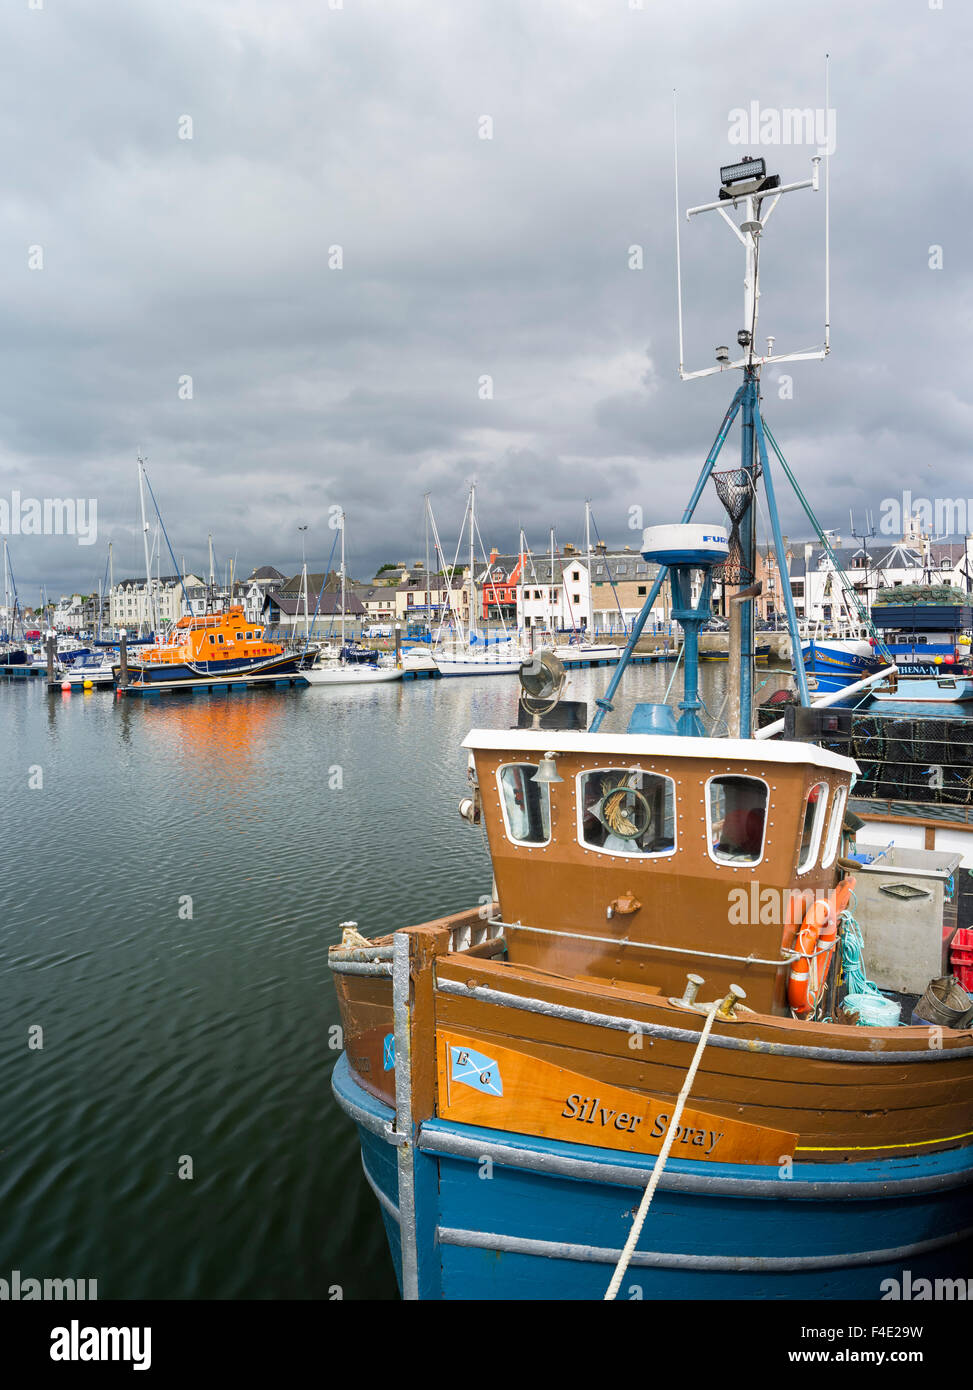 Stornoway, the largest town. Harbor with fishing boats and yachts. Europe, Scotland (Large format sizes available) - Stock Image